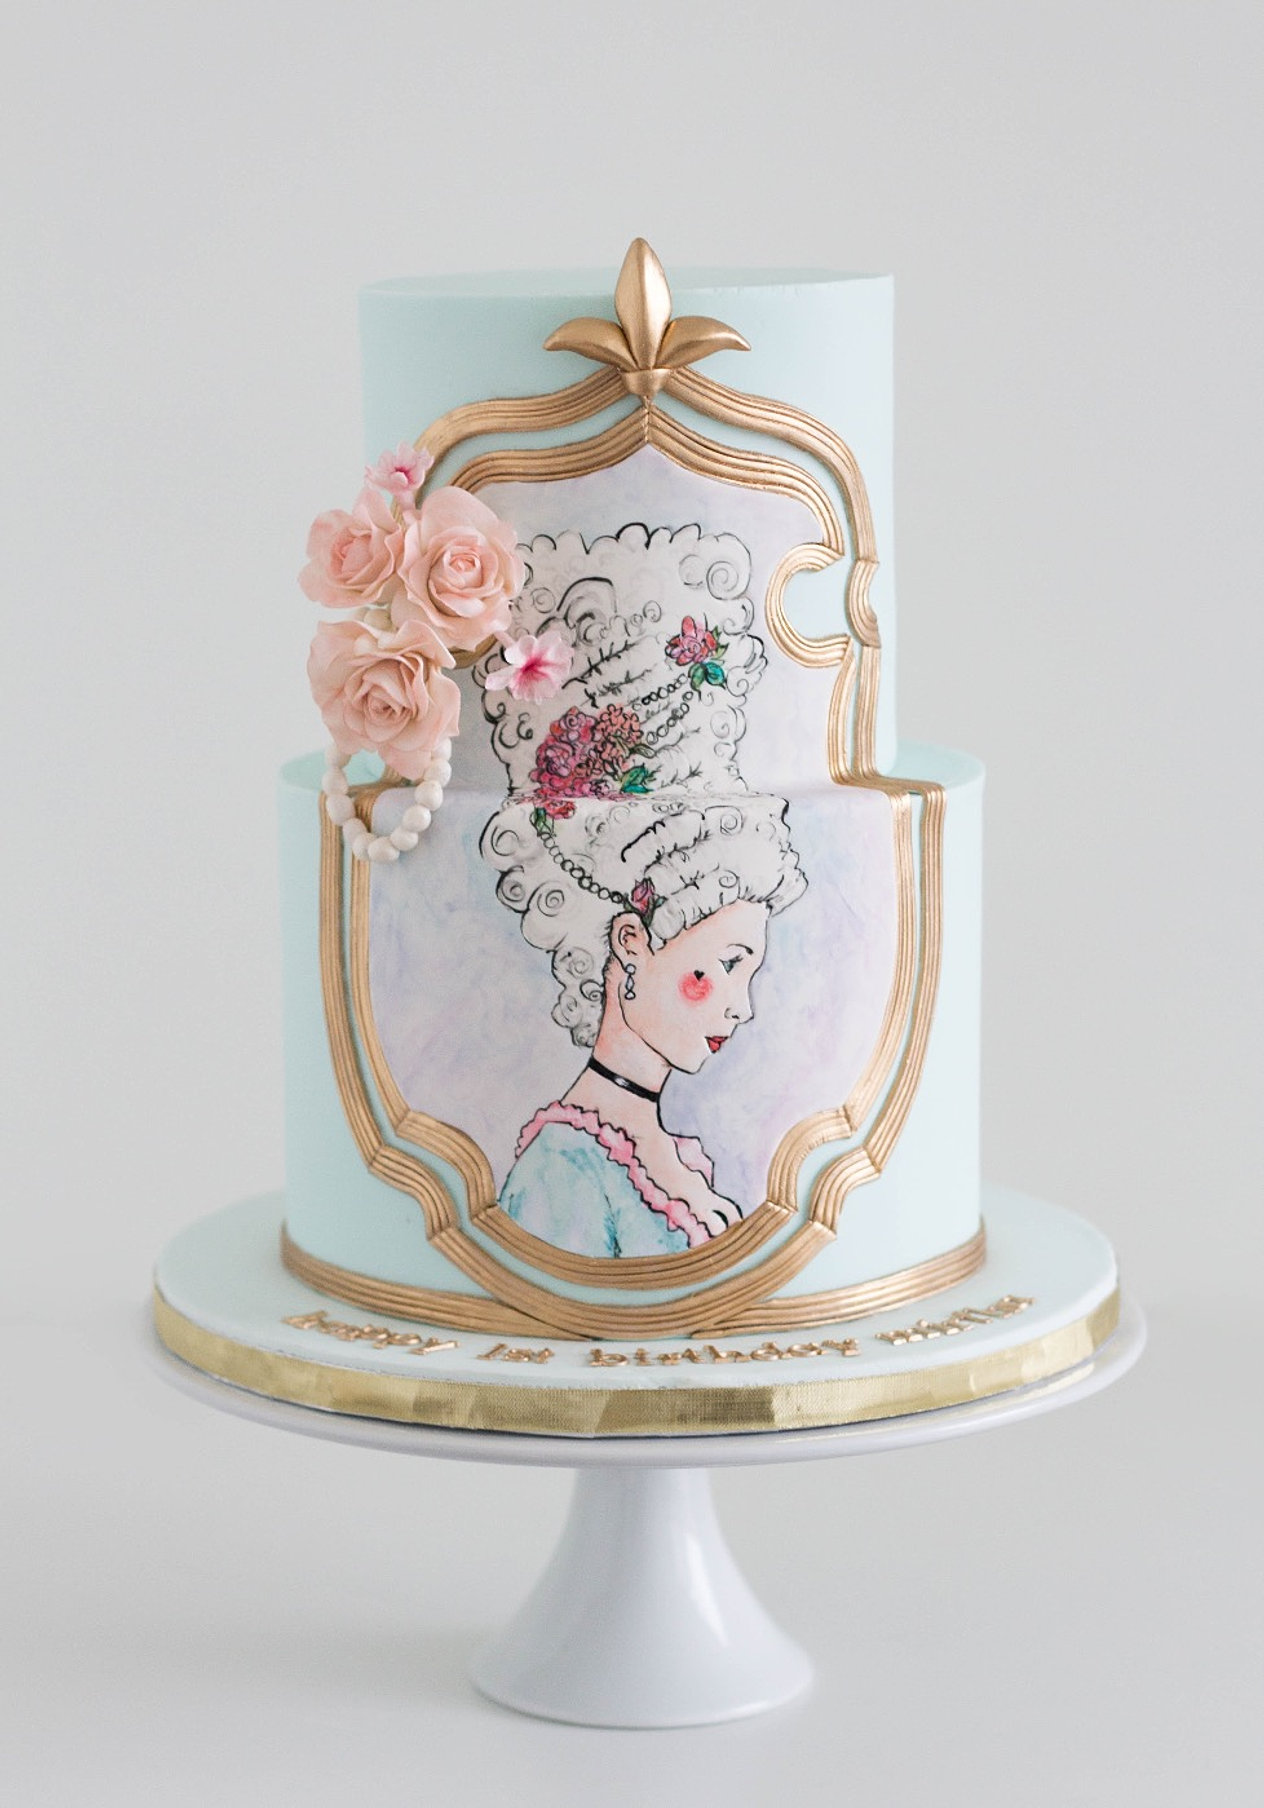 cake by annie vancouver custom cakes vancouver wedding cakes. Black Bedroom Furniture Sets. Home Design Ideas